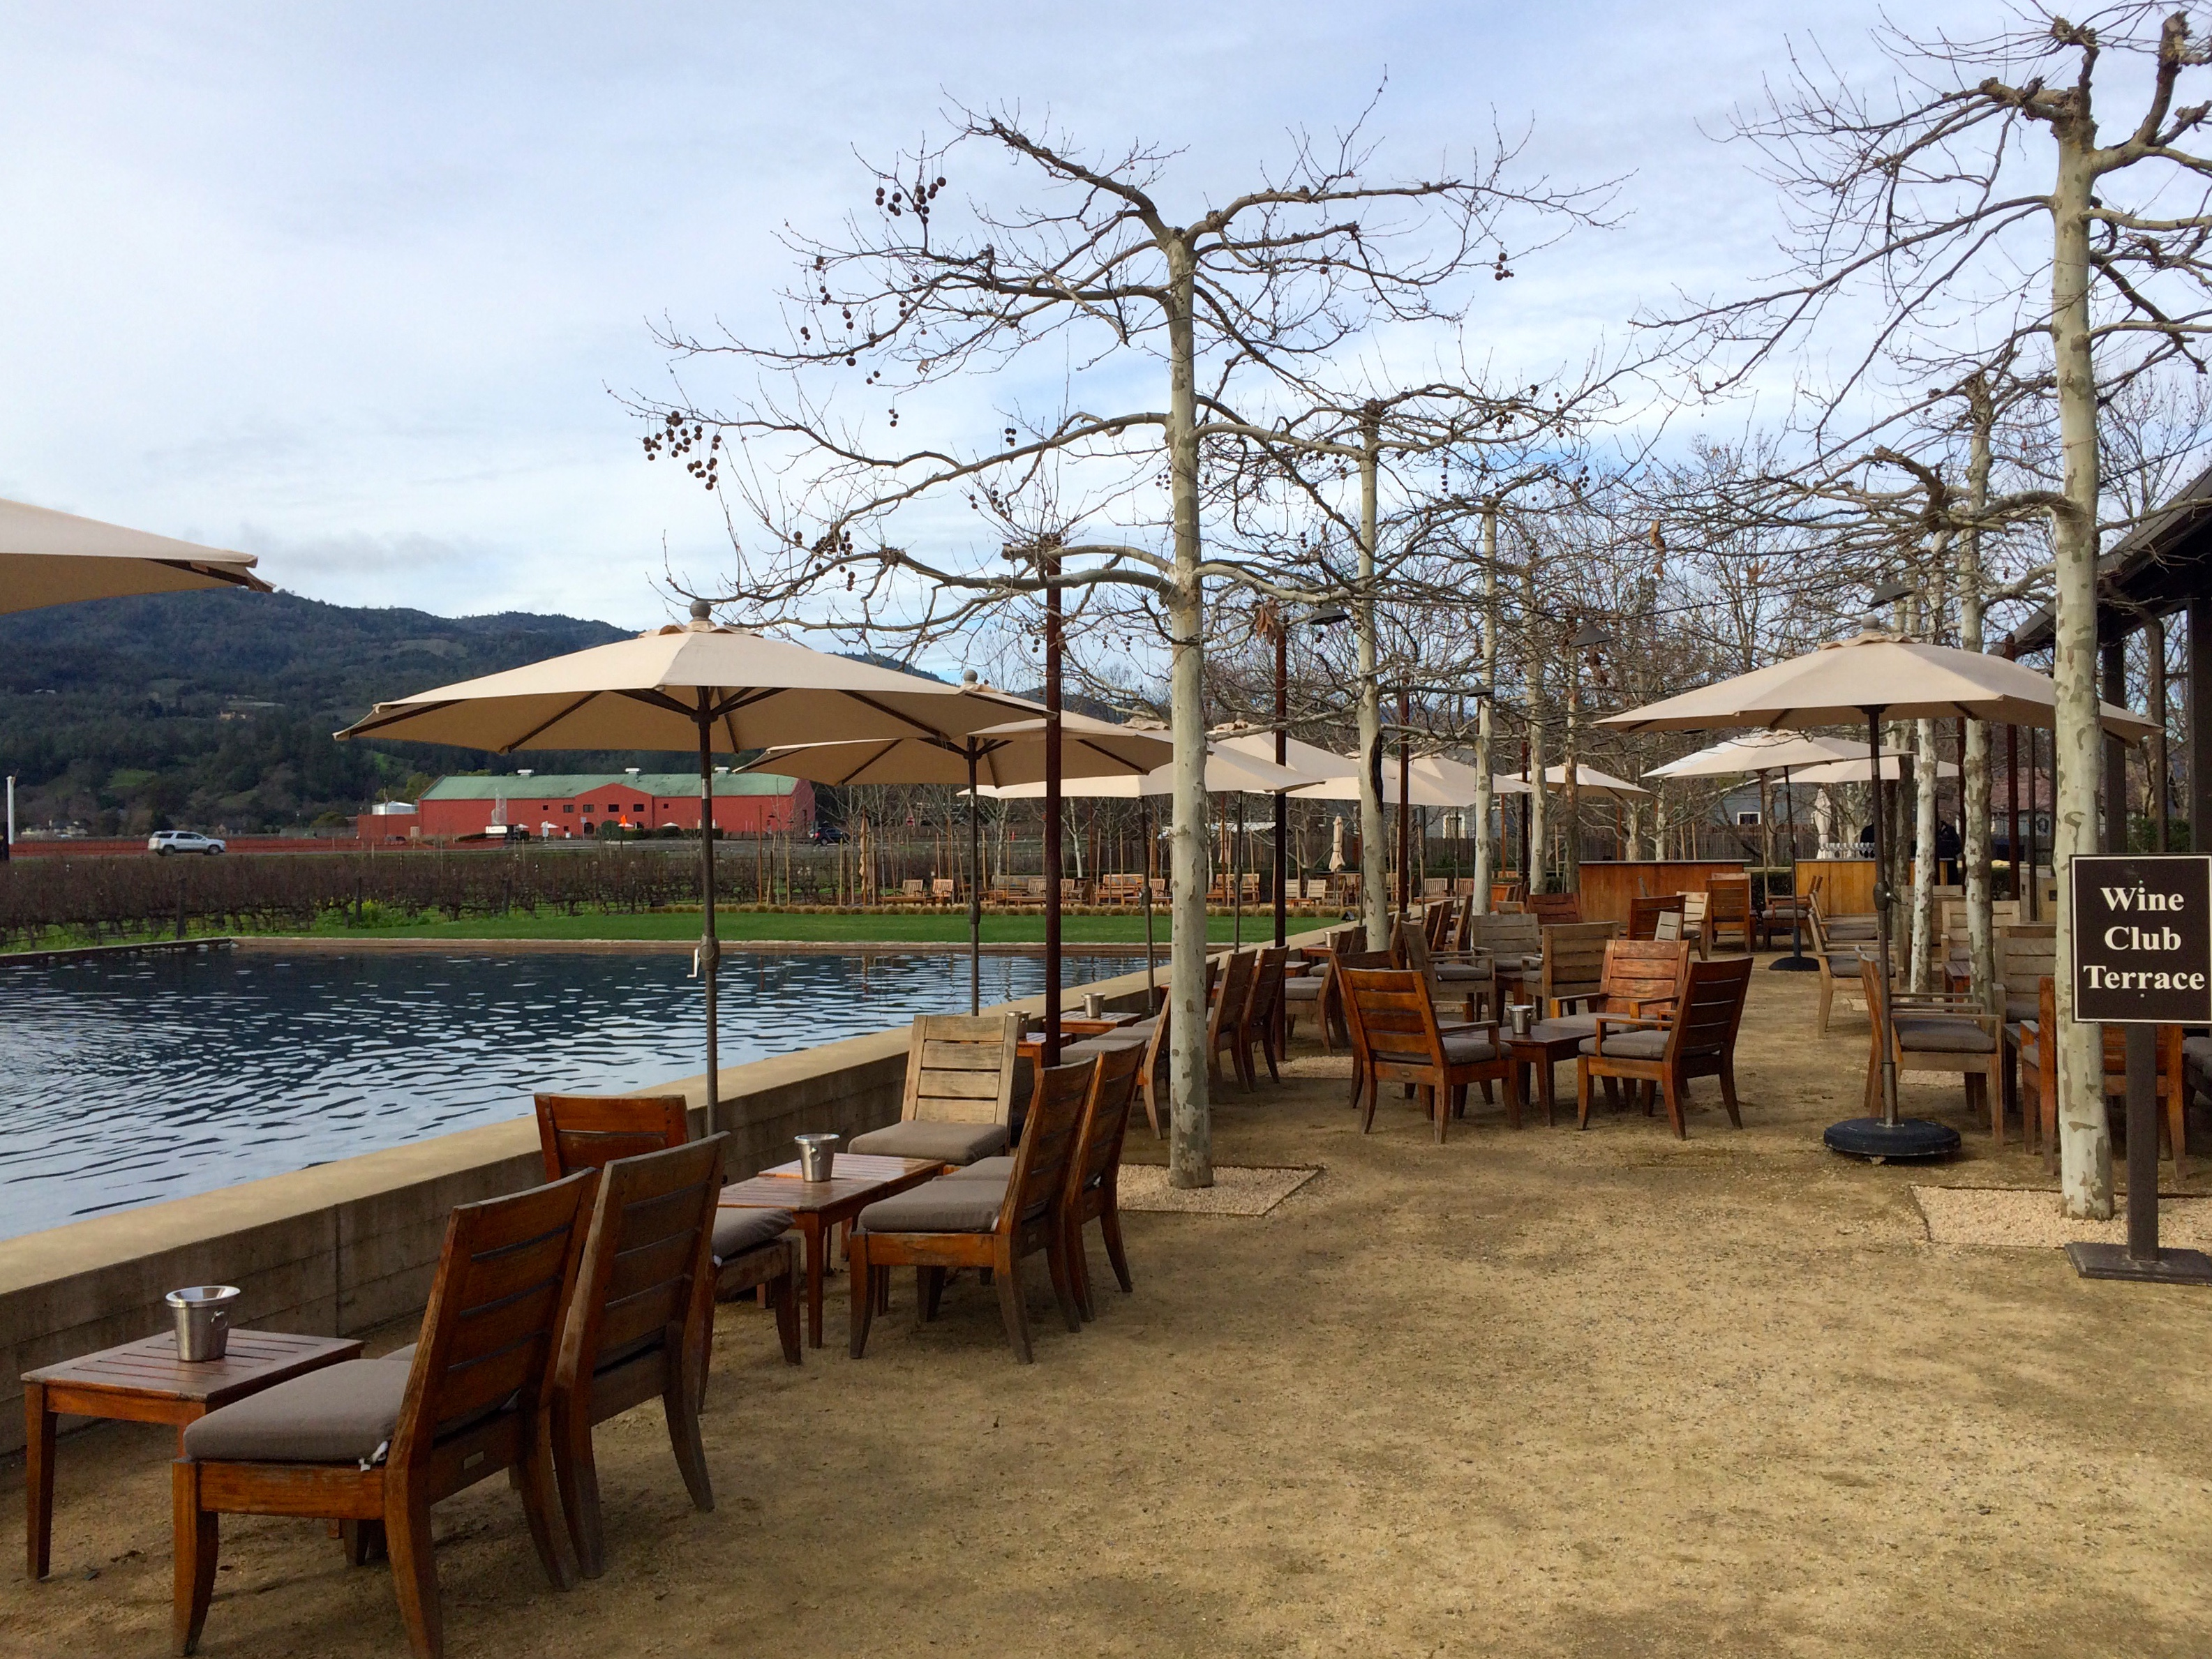 Alpha Omega winery in Napa valley, outdoor area